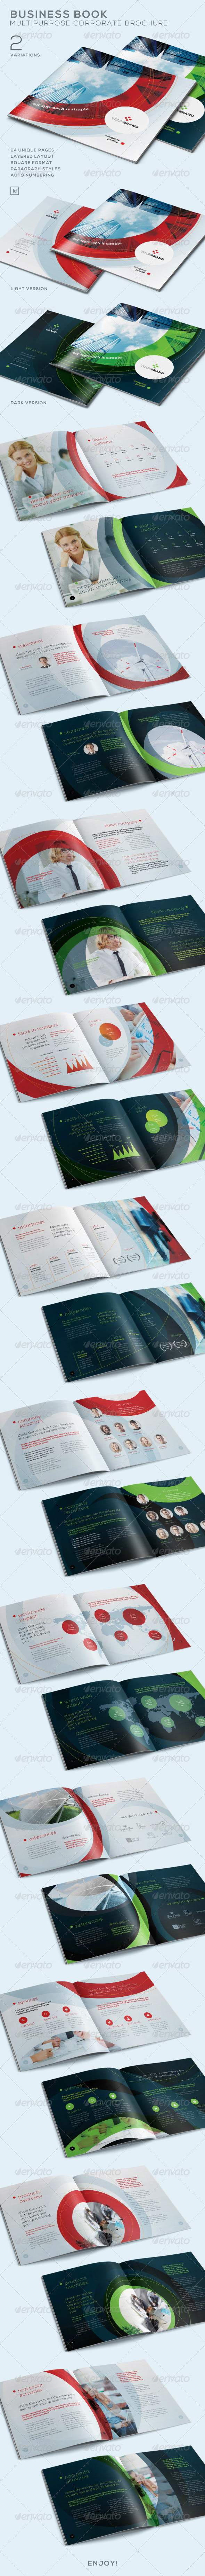 GraphicRiver Business Book Multi-Purpose Corporate Brochure 7696962